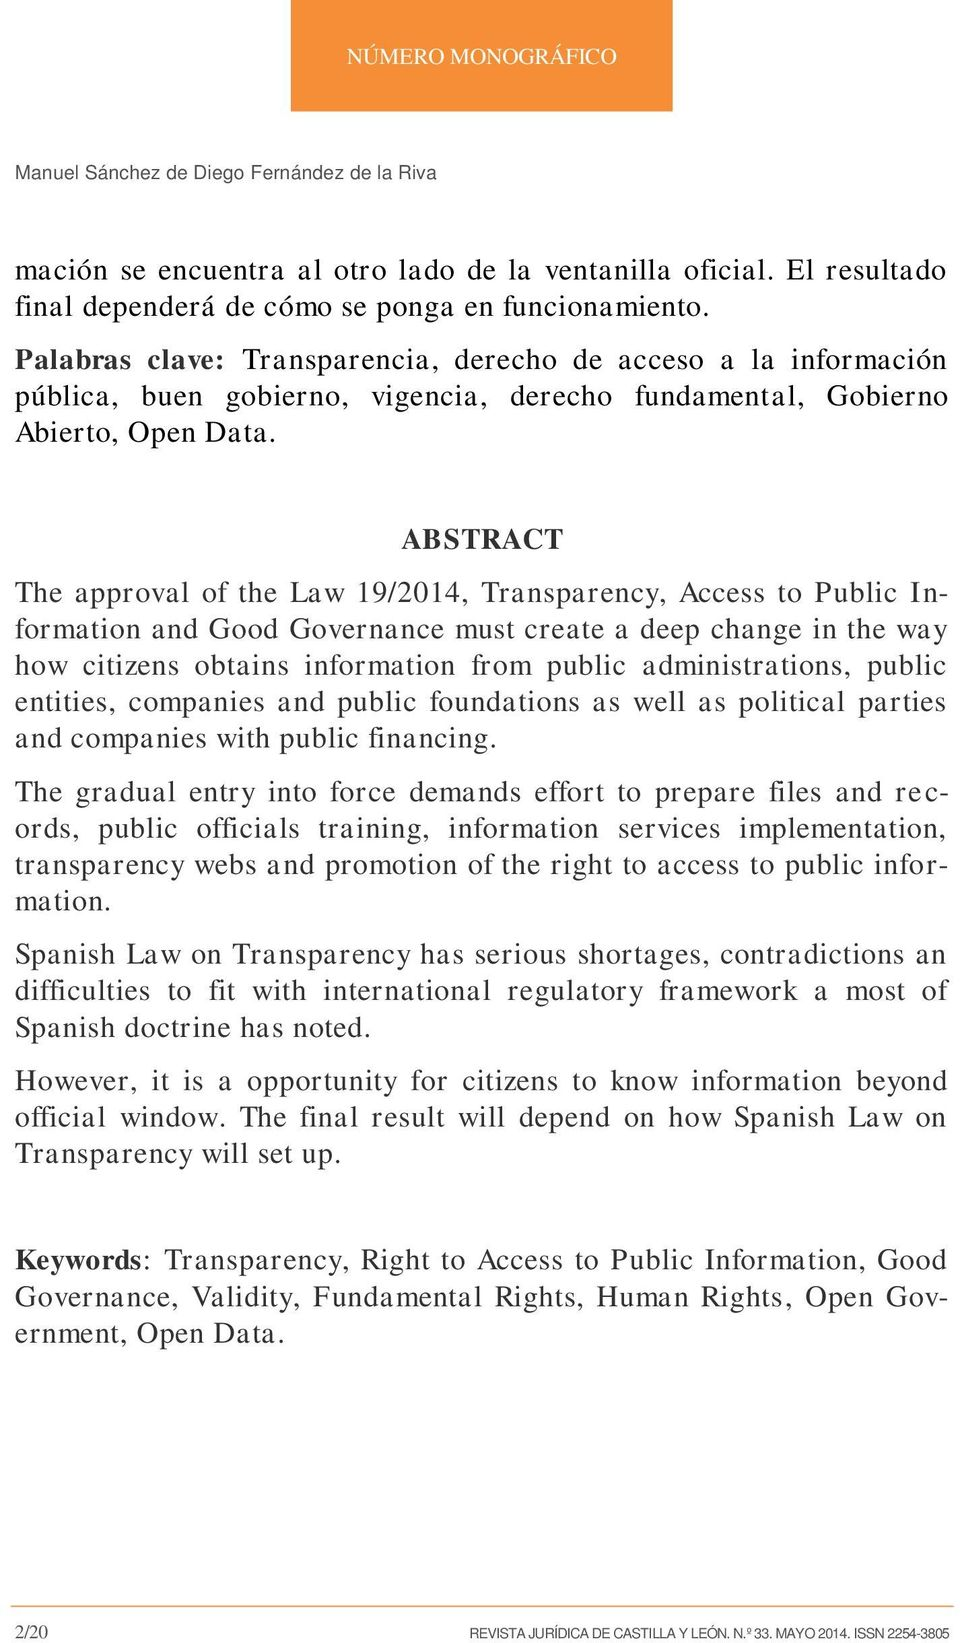 ABSTRACT The approval of the Law 19/2014, Transparency, Access to Public Information and Good Governance must create a deep change in the way how citizens obtains information from public